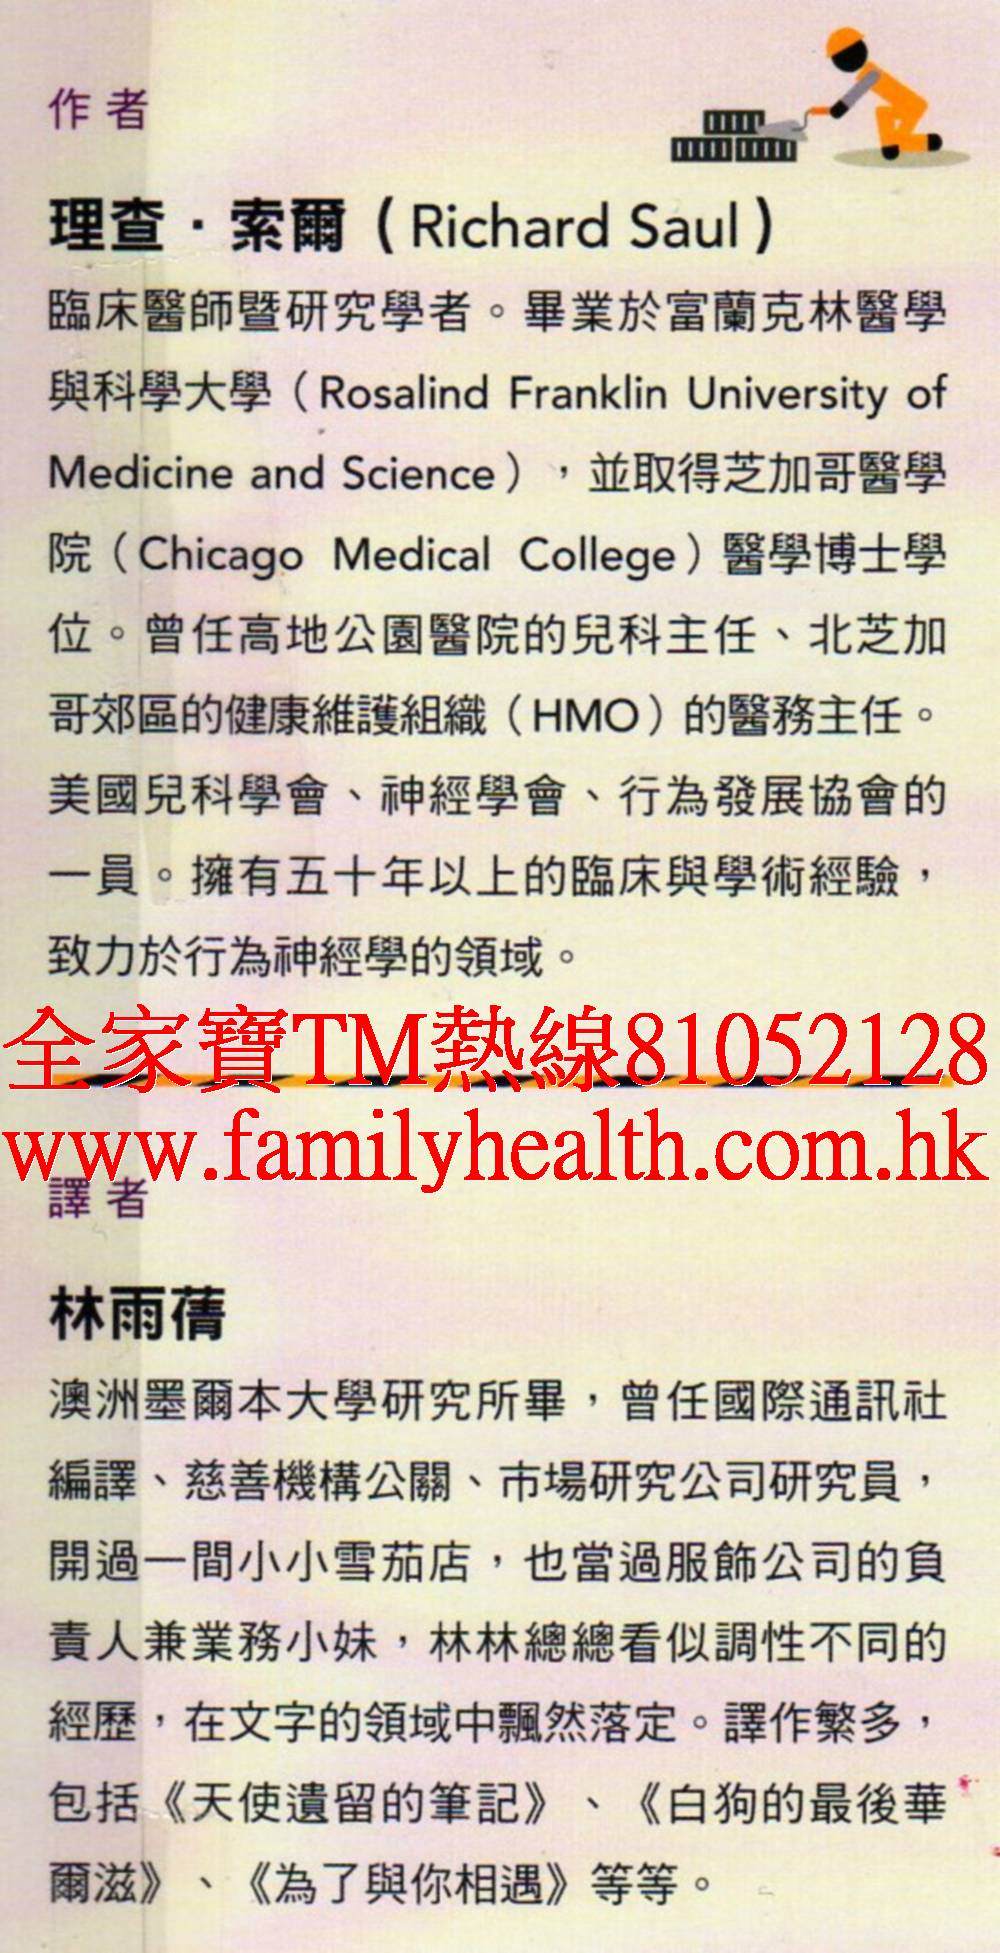 http://www.familyhealth.com.hk/files/full/896_2.jpg